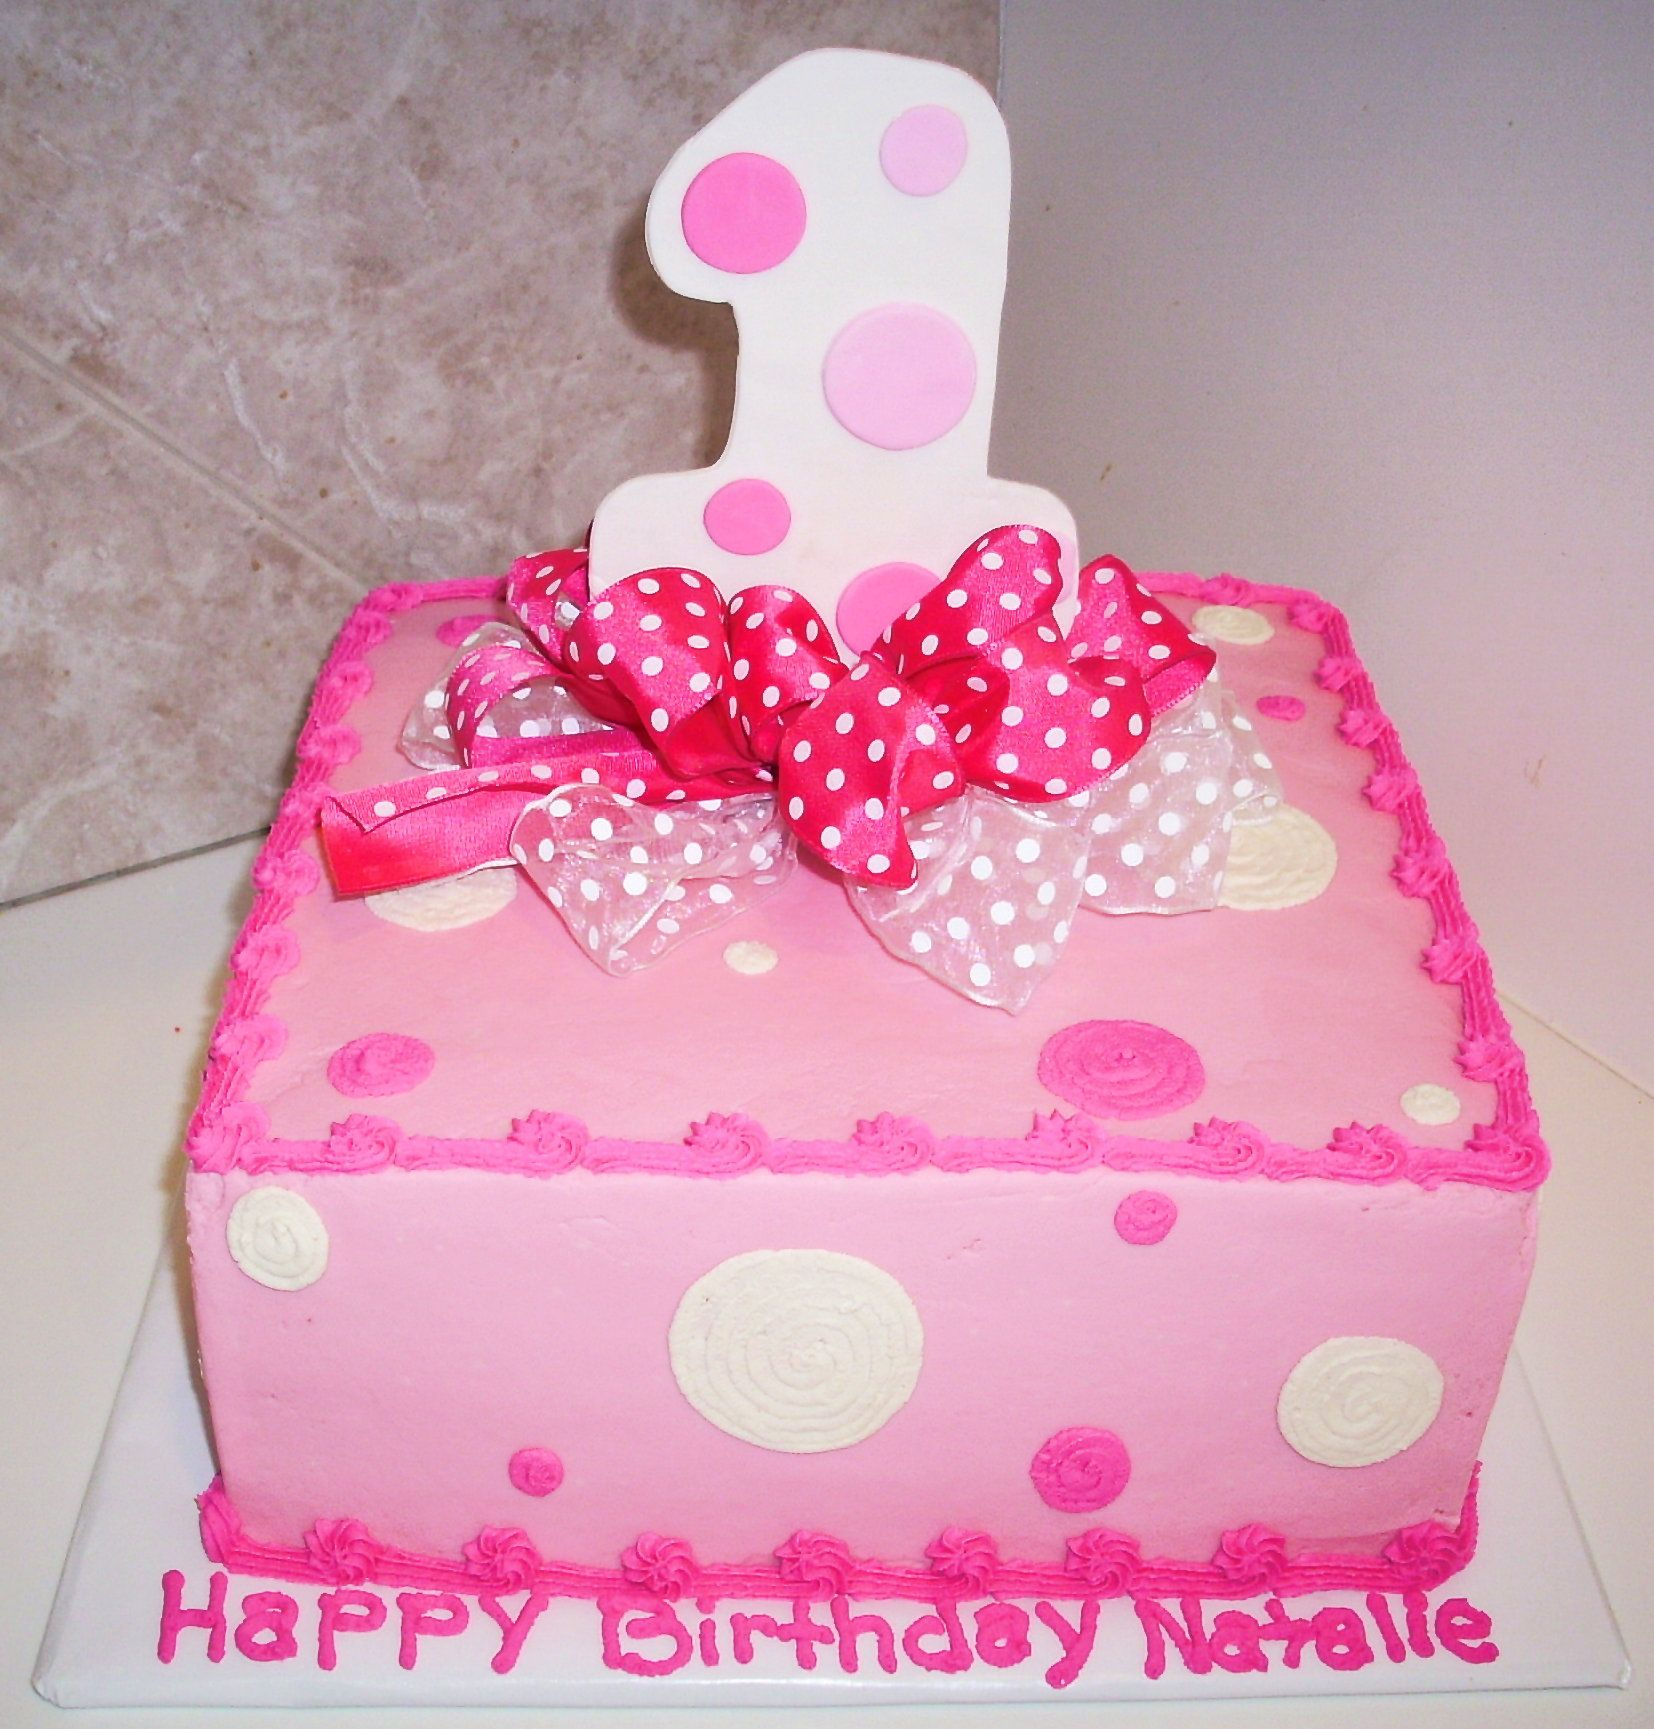 1st Birthday Cakes For Girls Pink Bow Cake Pictures tips and